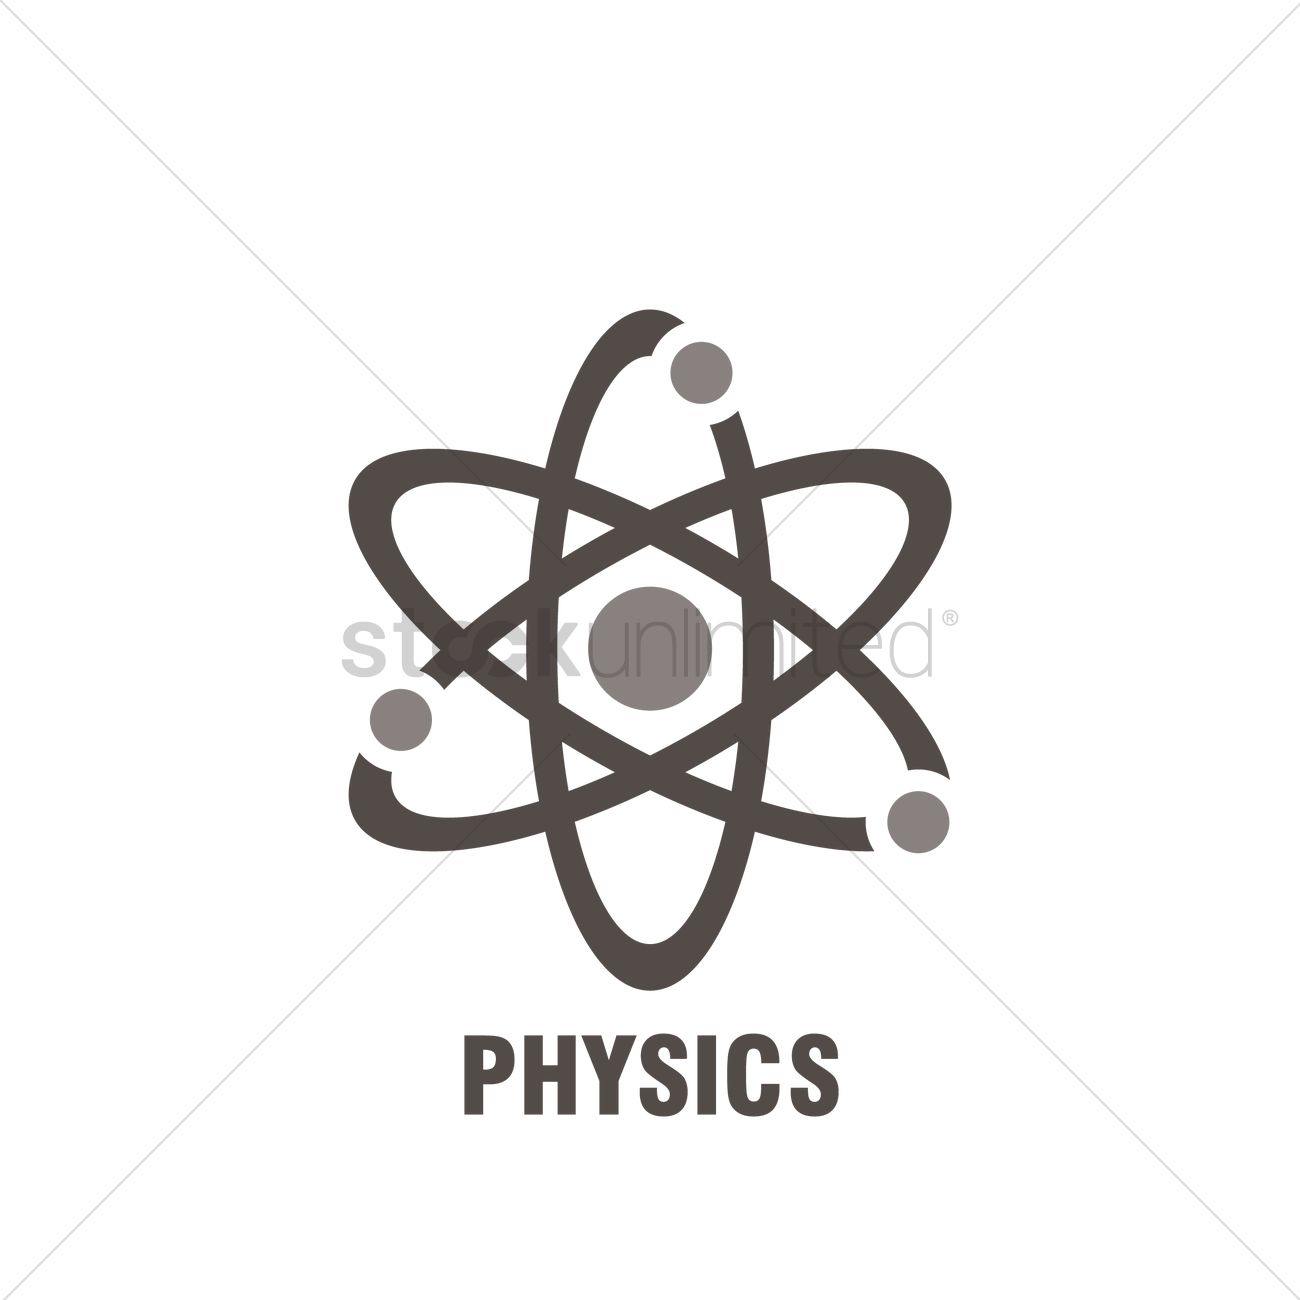 Physics Subject Icon Vector Image 1986748 Stockunlimited